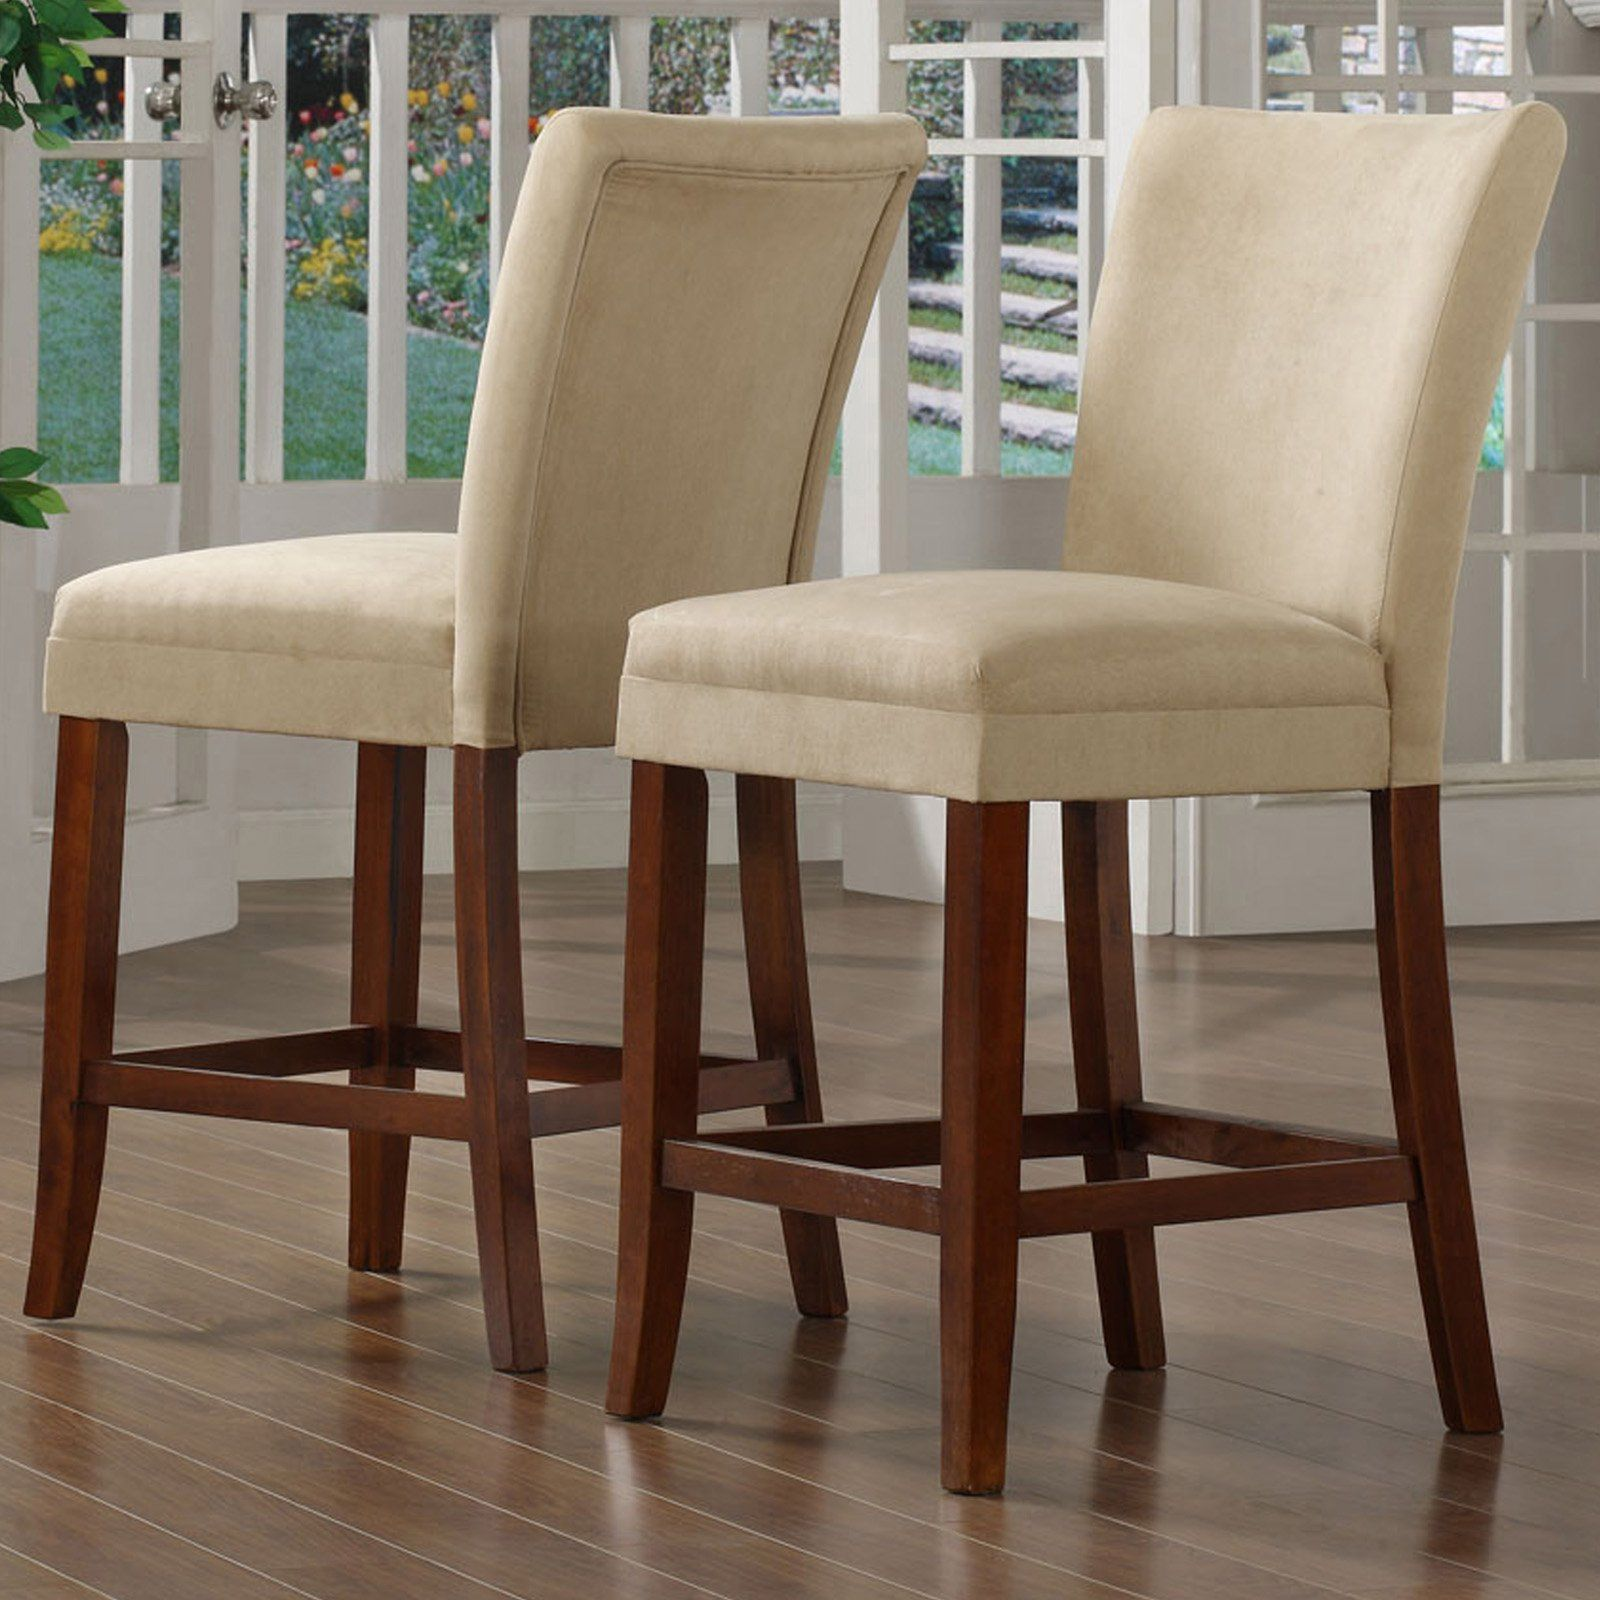 Microfiber Dining Chairs Achillea Counter Height Stool Microfiber Set Of 2